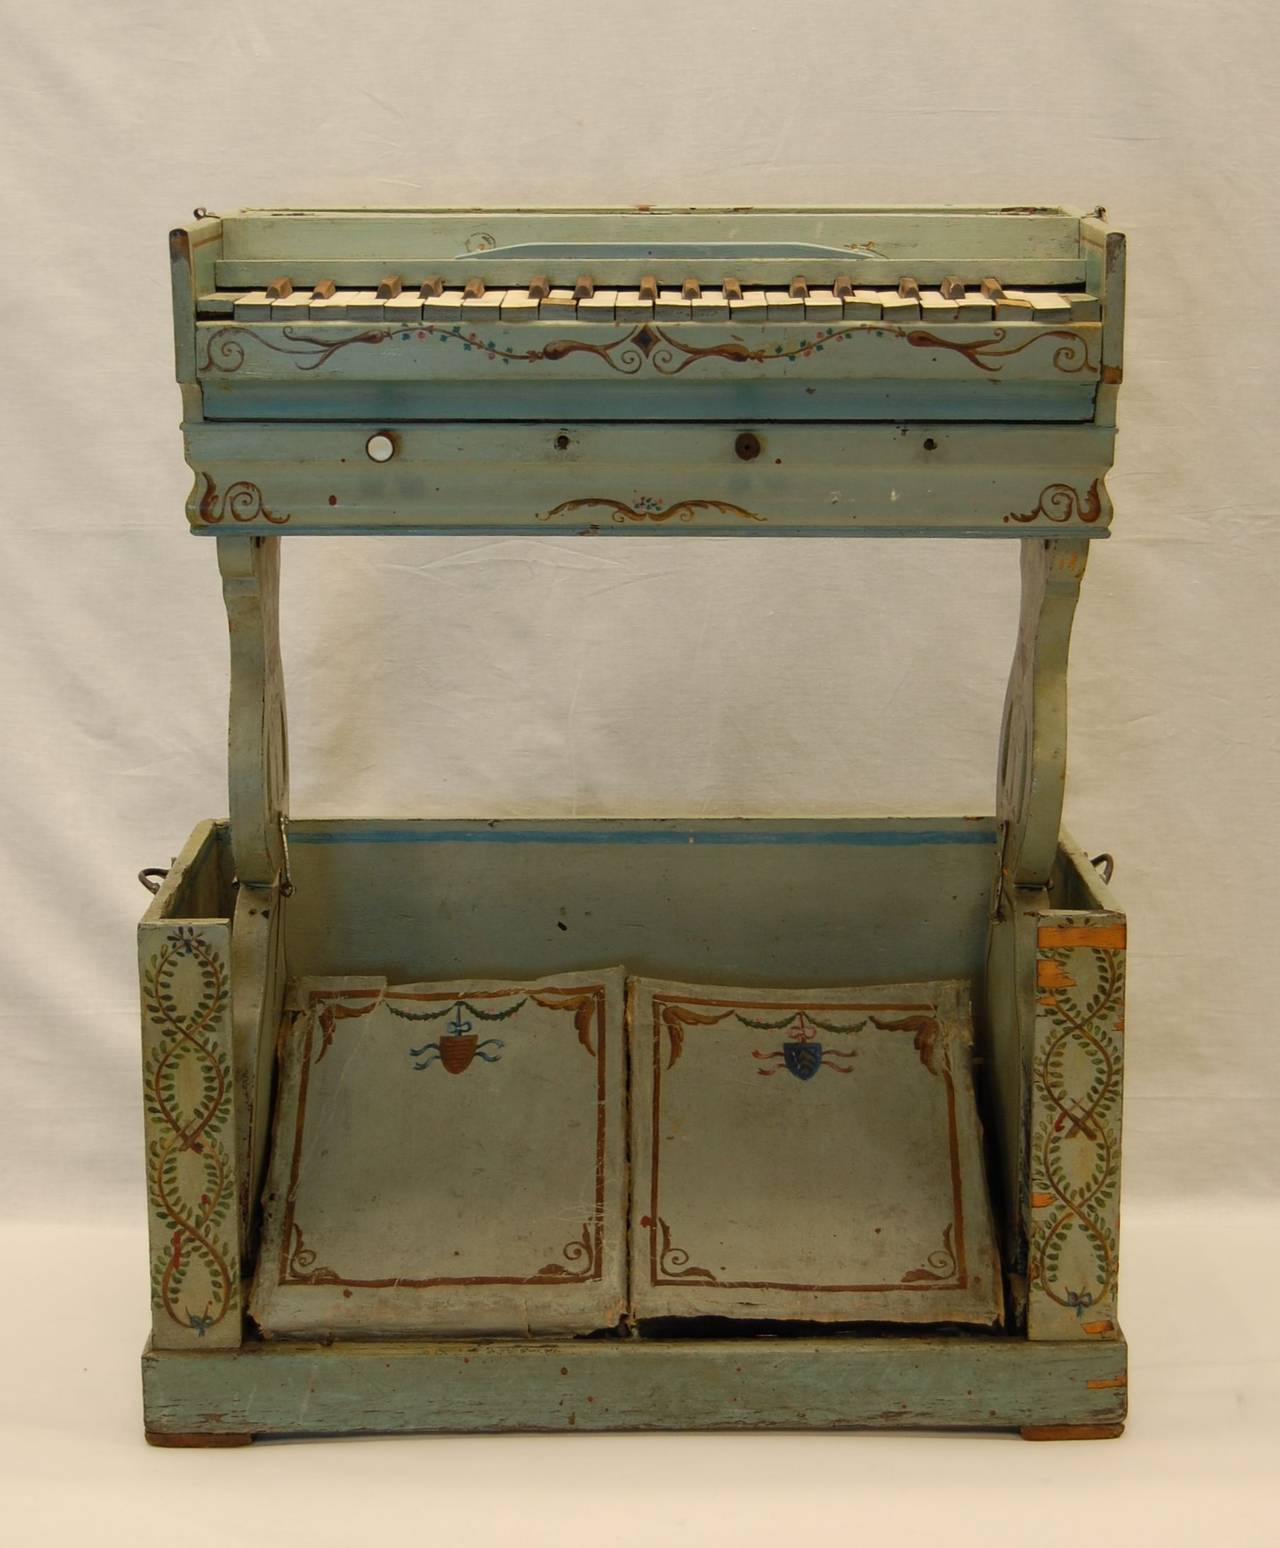 Child's organ with two peddles which force air upward through internal passages in each upright support. Needs restoration (please see condition notes below). Beautifully painted and decorated. This unit folds down into itself, dimensions in folded